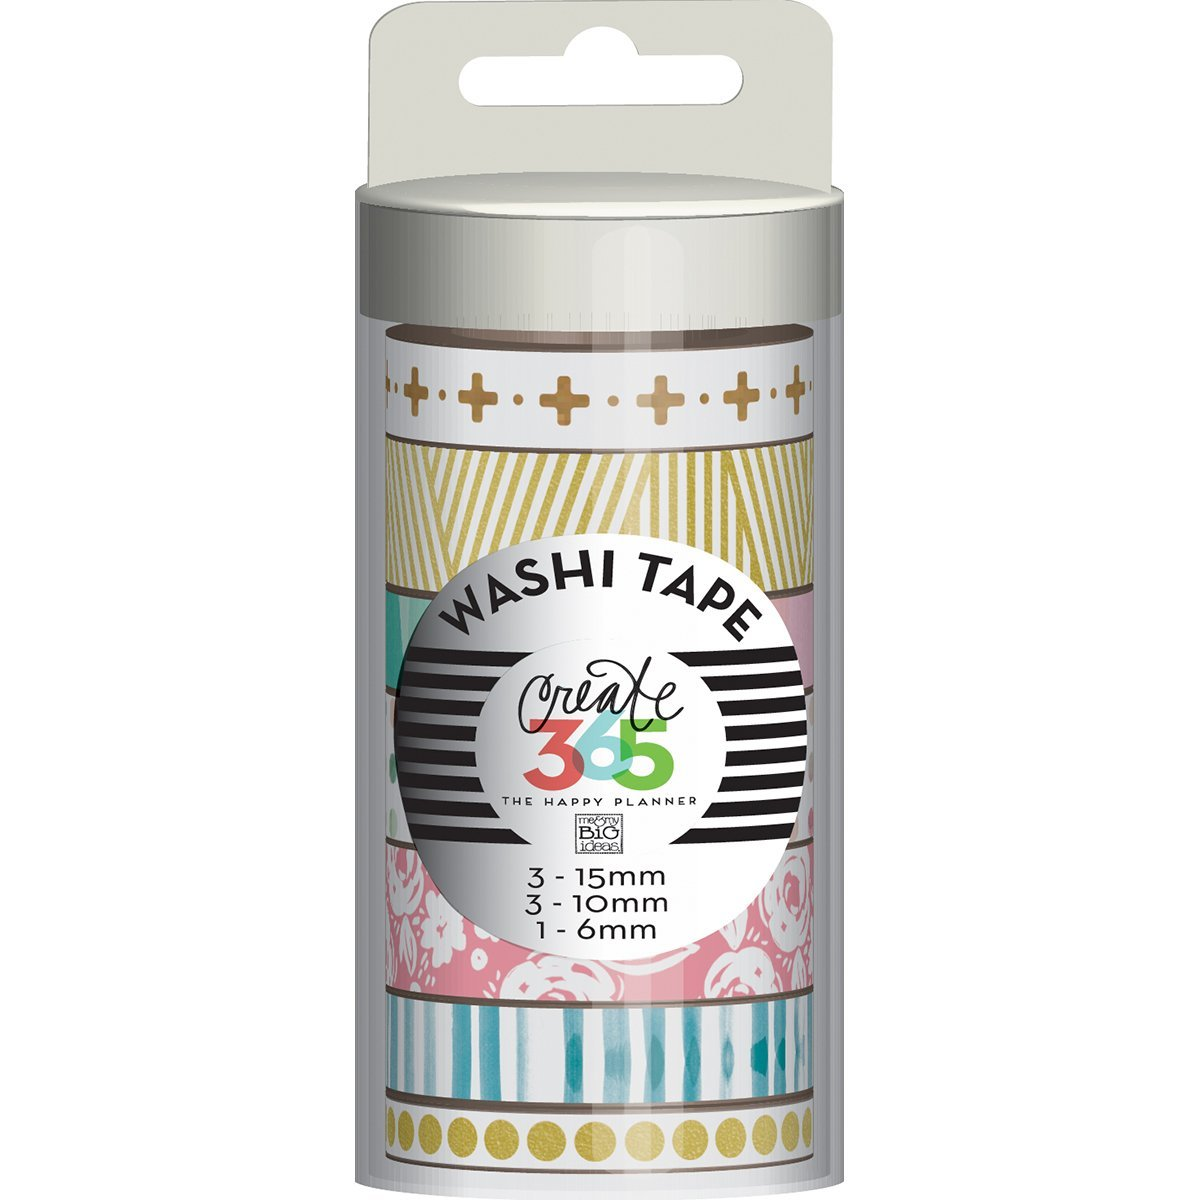 Talla Unica Me and My Big Ideas Set de 7 Washi Tape Hello Life para Create 365 Planner Materiales sint/éticos